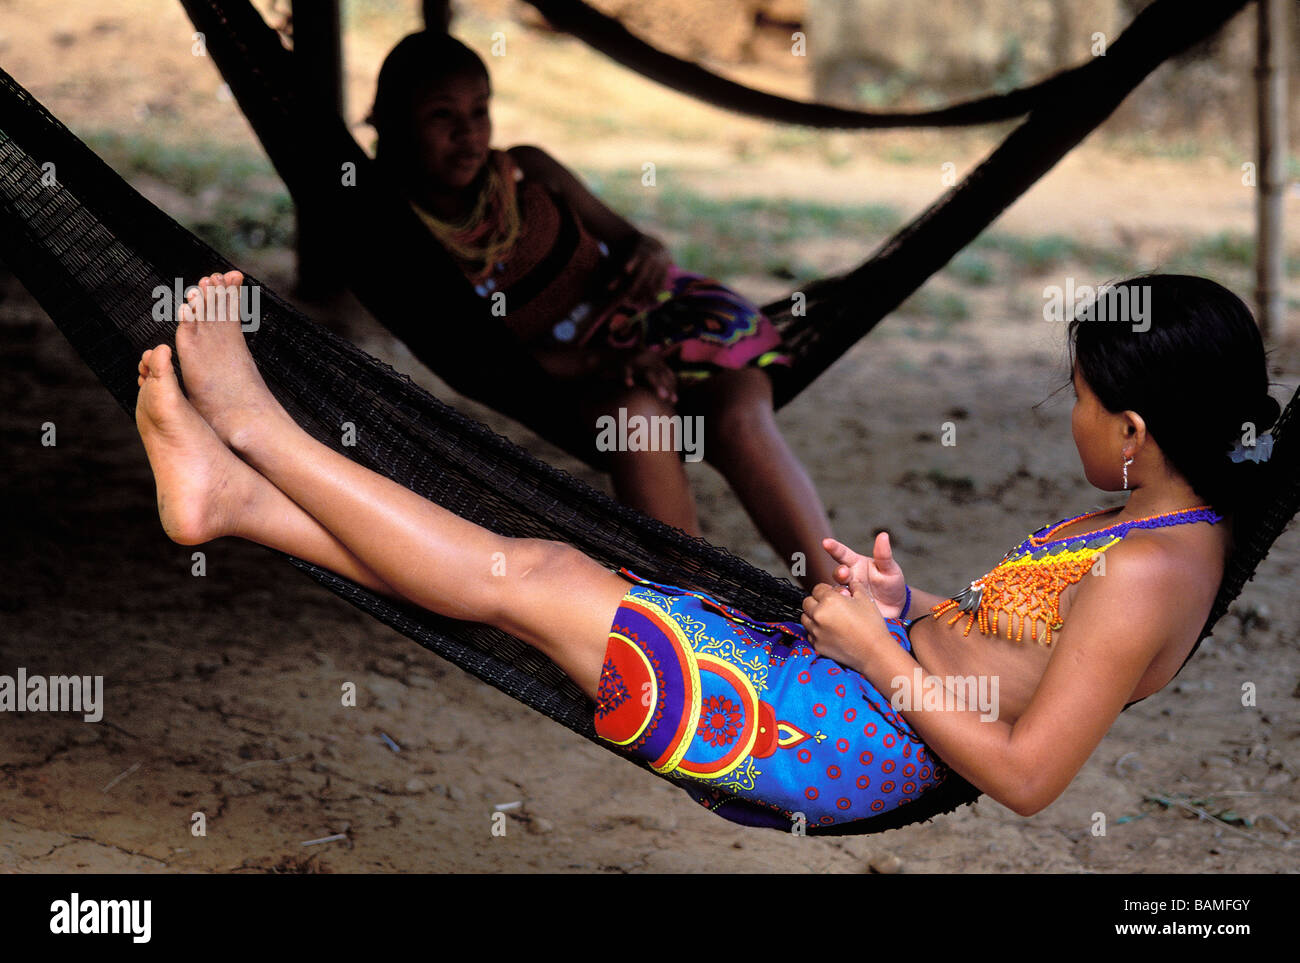 Panama, Panama and Colon Provinces, Chagres National Park, Parque Nacional Chagres, Embera Indian woman in a hammock - Stock Image